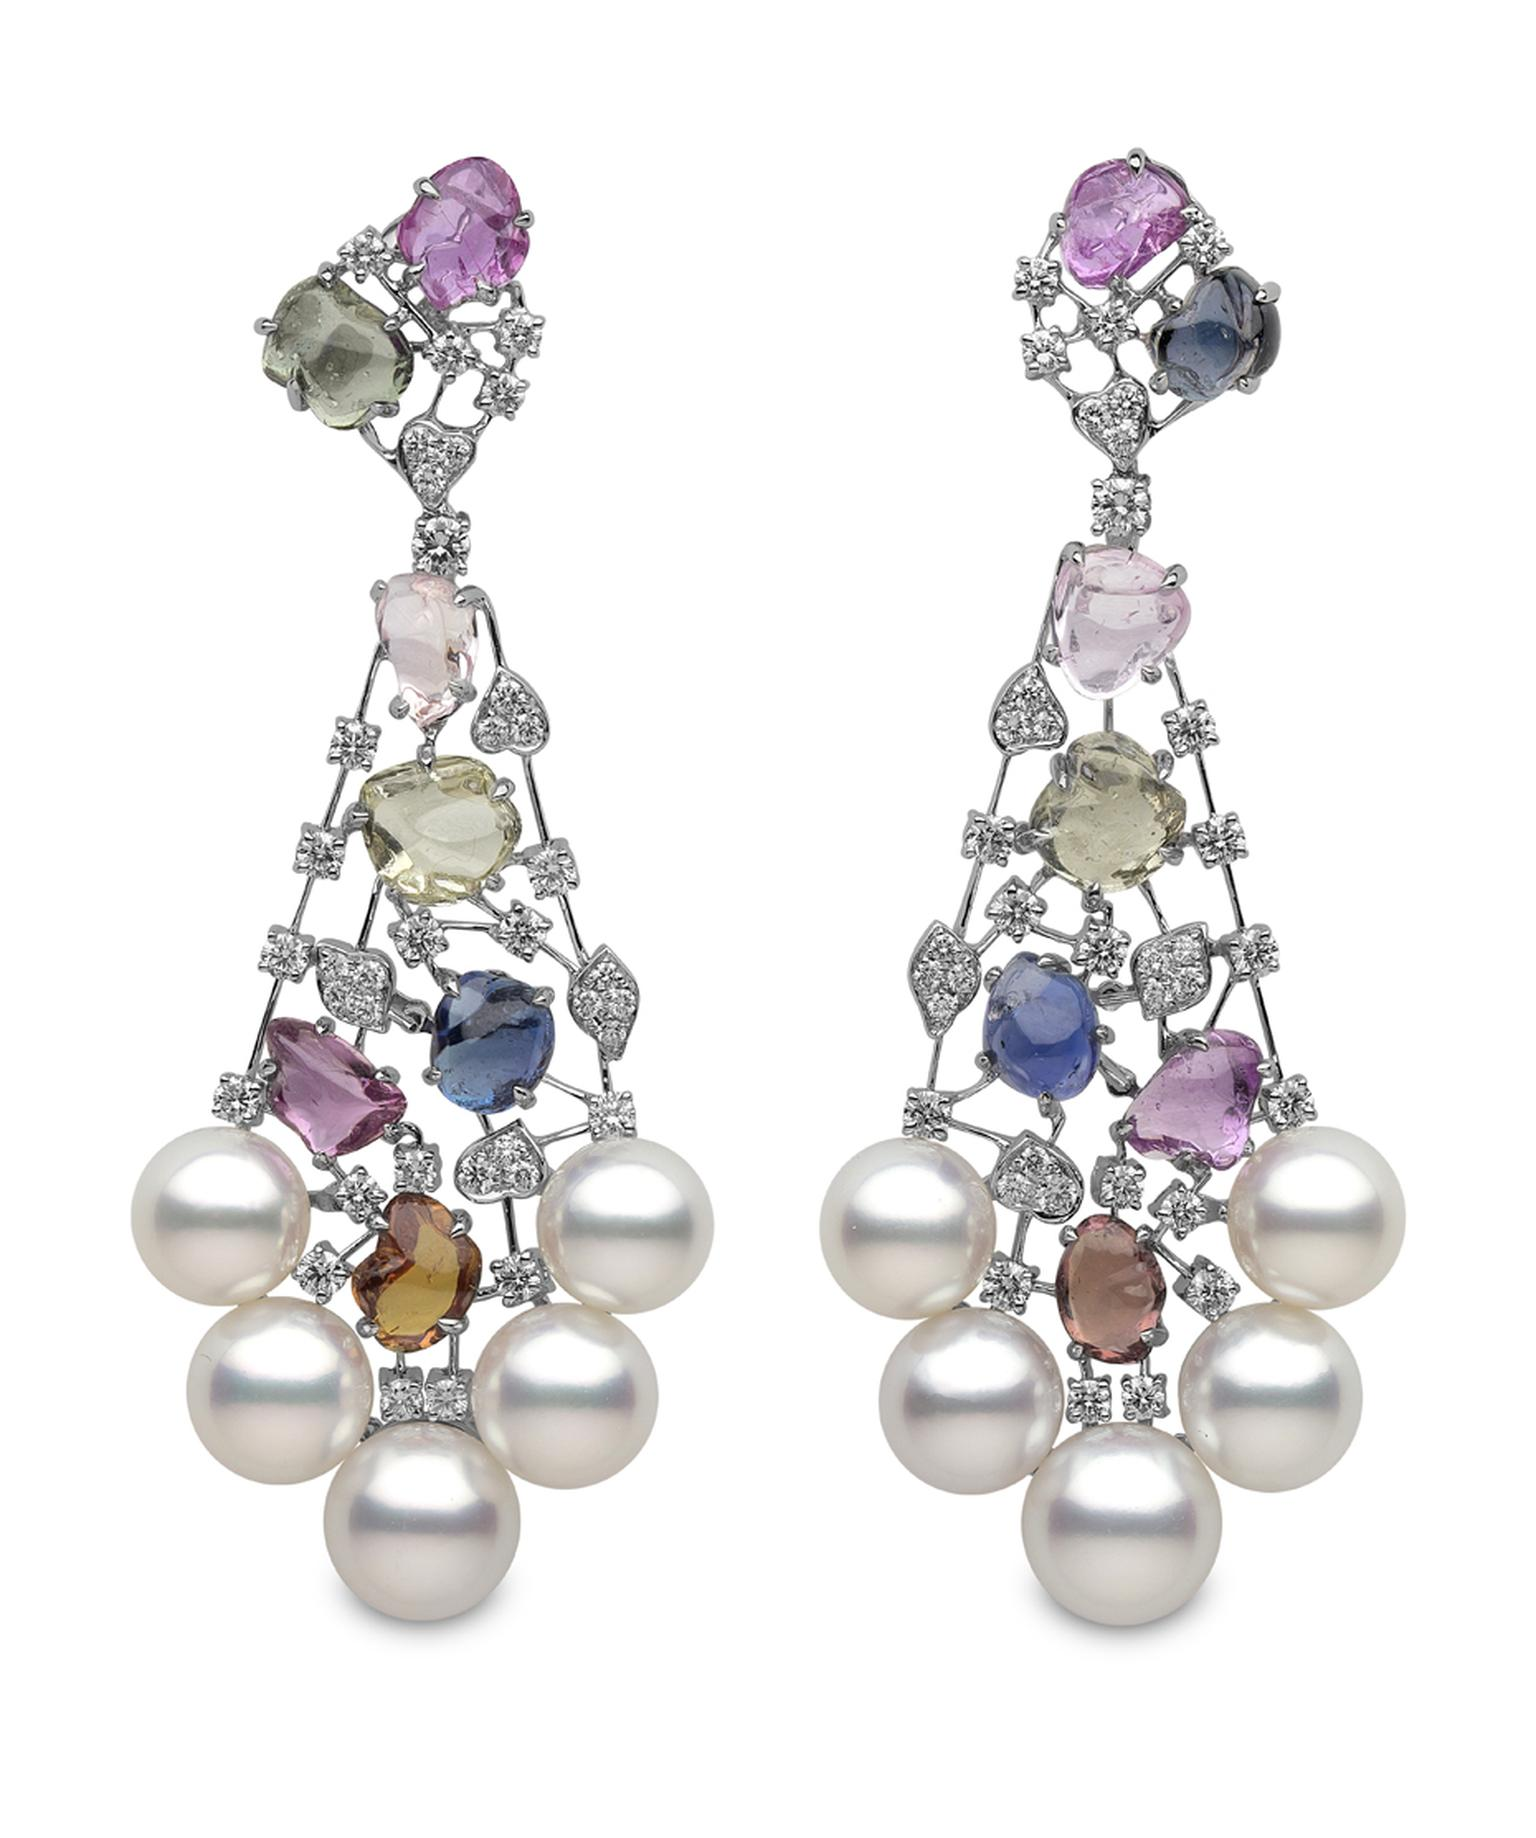 Yoko London white gold Aurora earrings from the Masterpiece collection, featuring Australian South Sea pearls, multi-coloured sapphires and diamonds